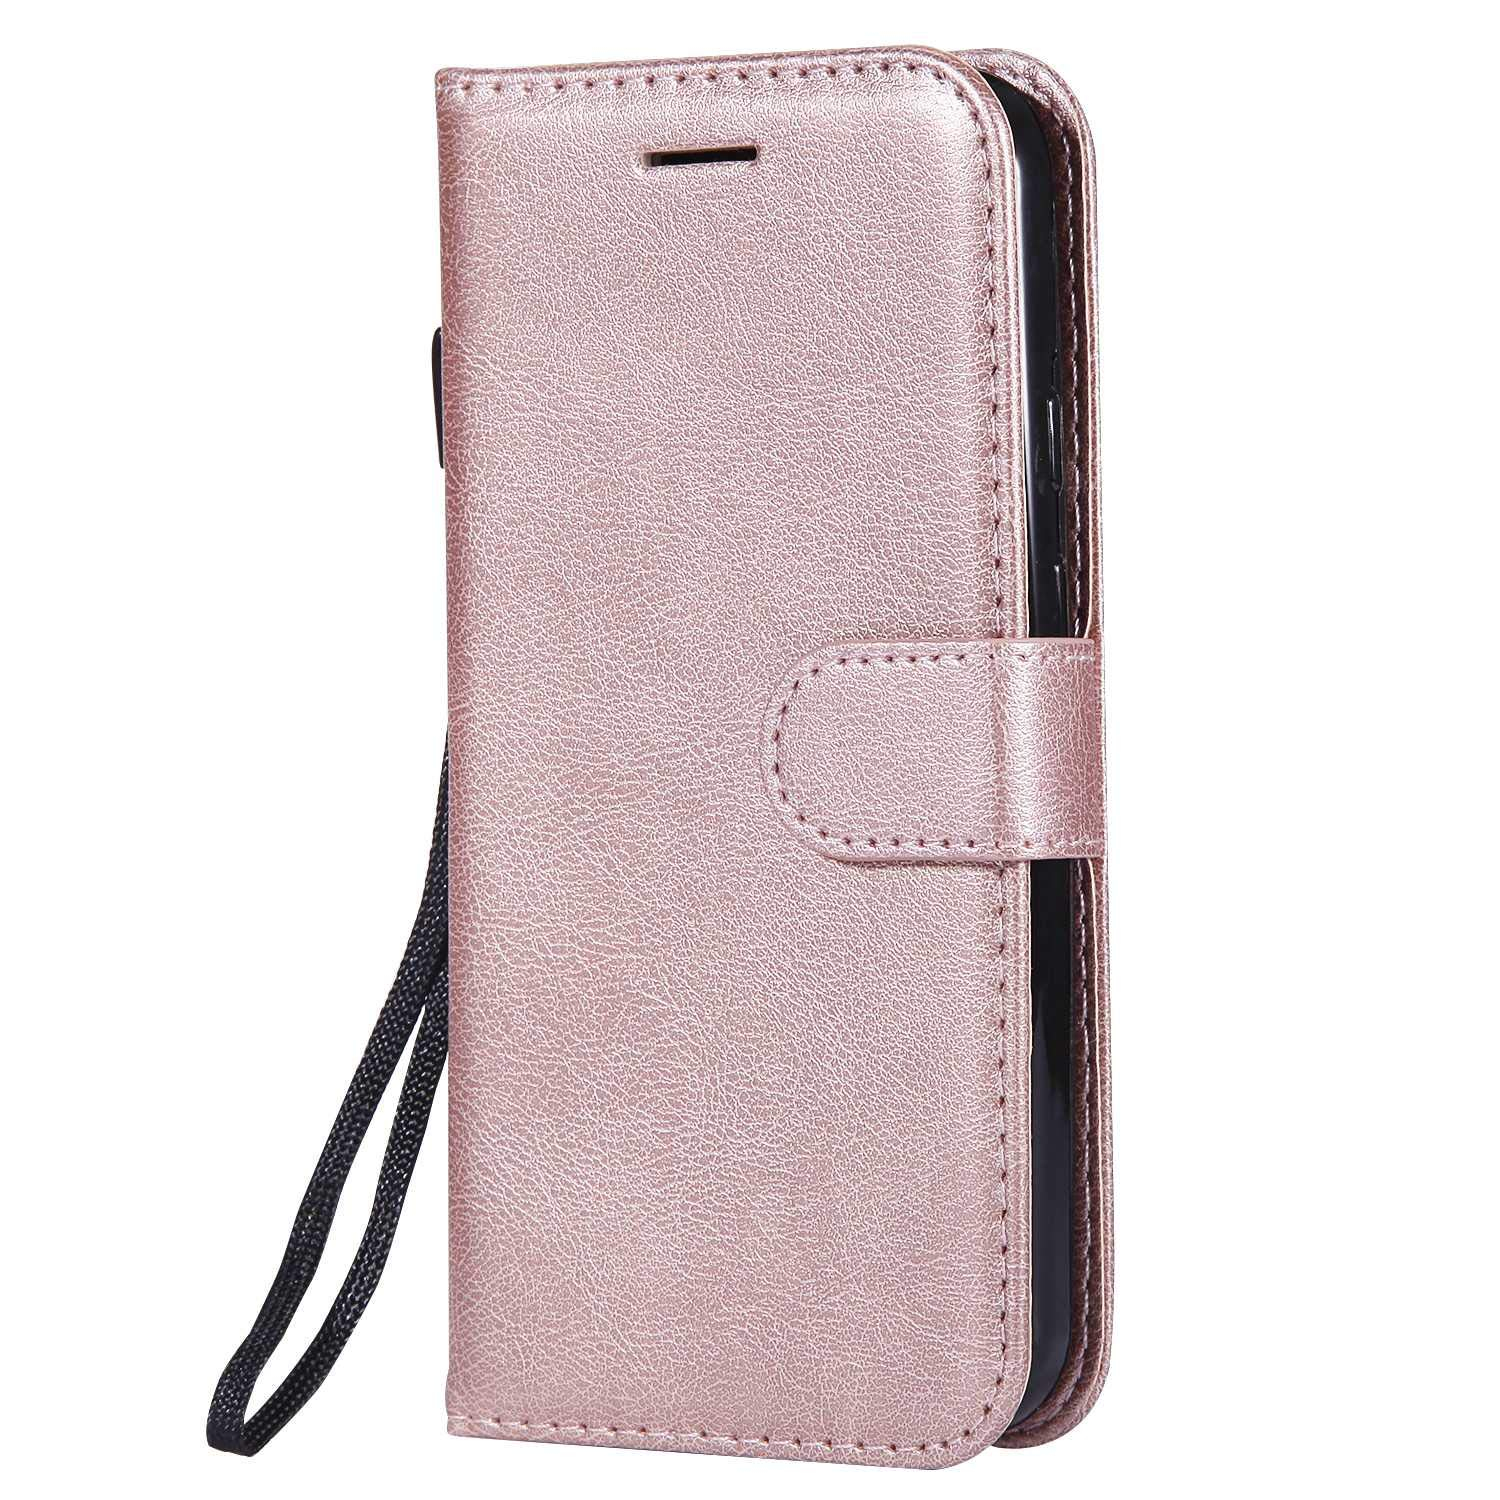 Moto G2 Wallet Case, UNEXTATI Leather Flip Case with Magnetic Closure and Card Holders, Anti-Shock Bumper Cover for Moto G2 (Rose Gold #4)